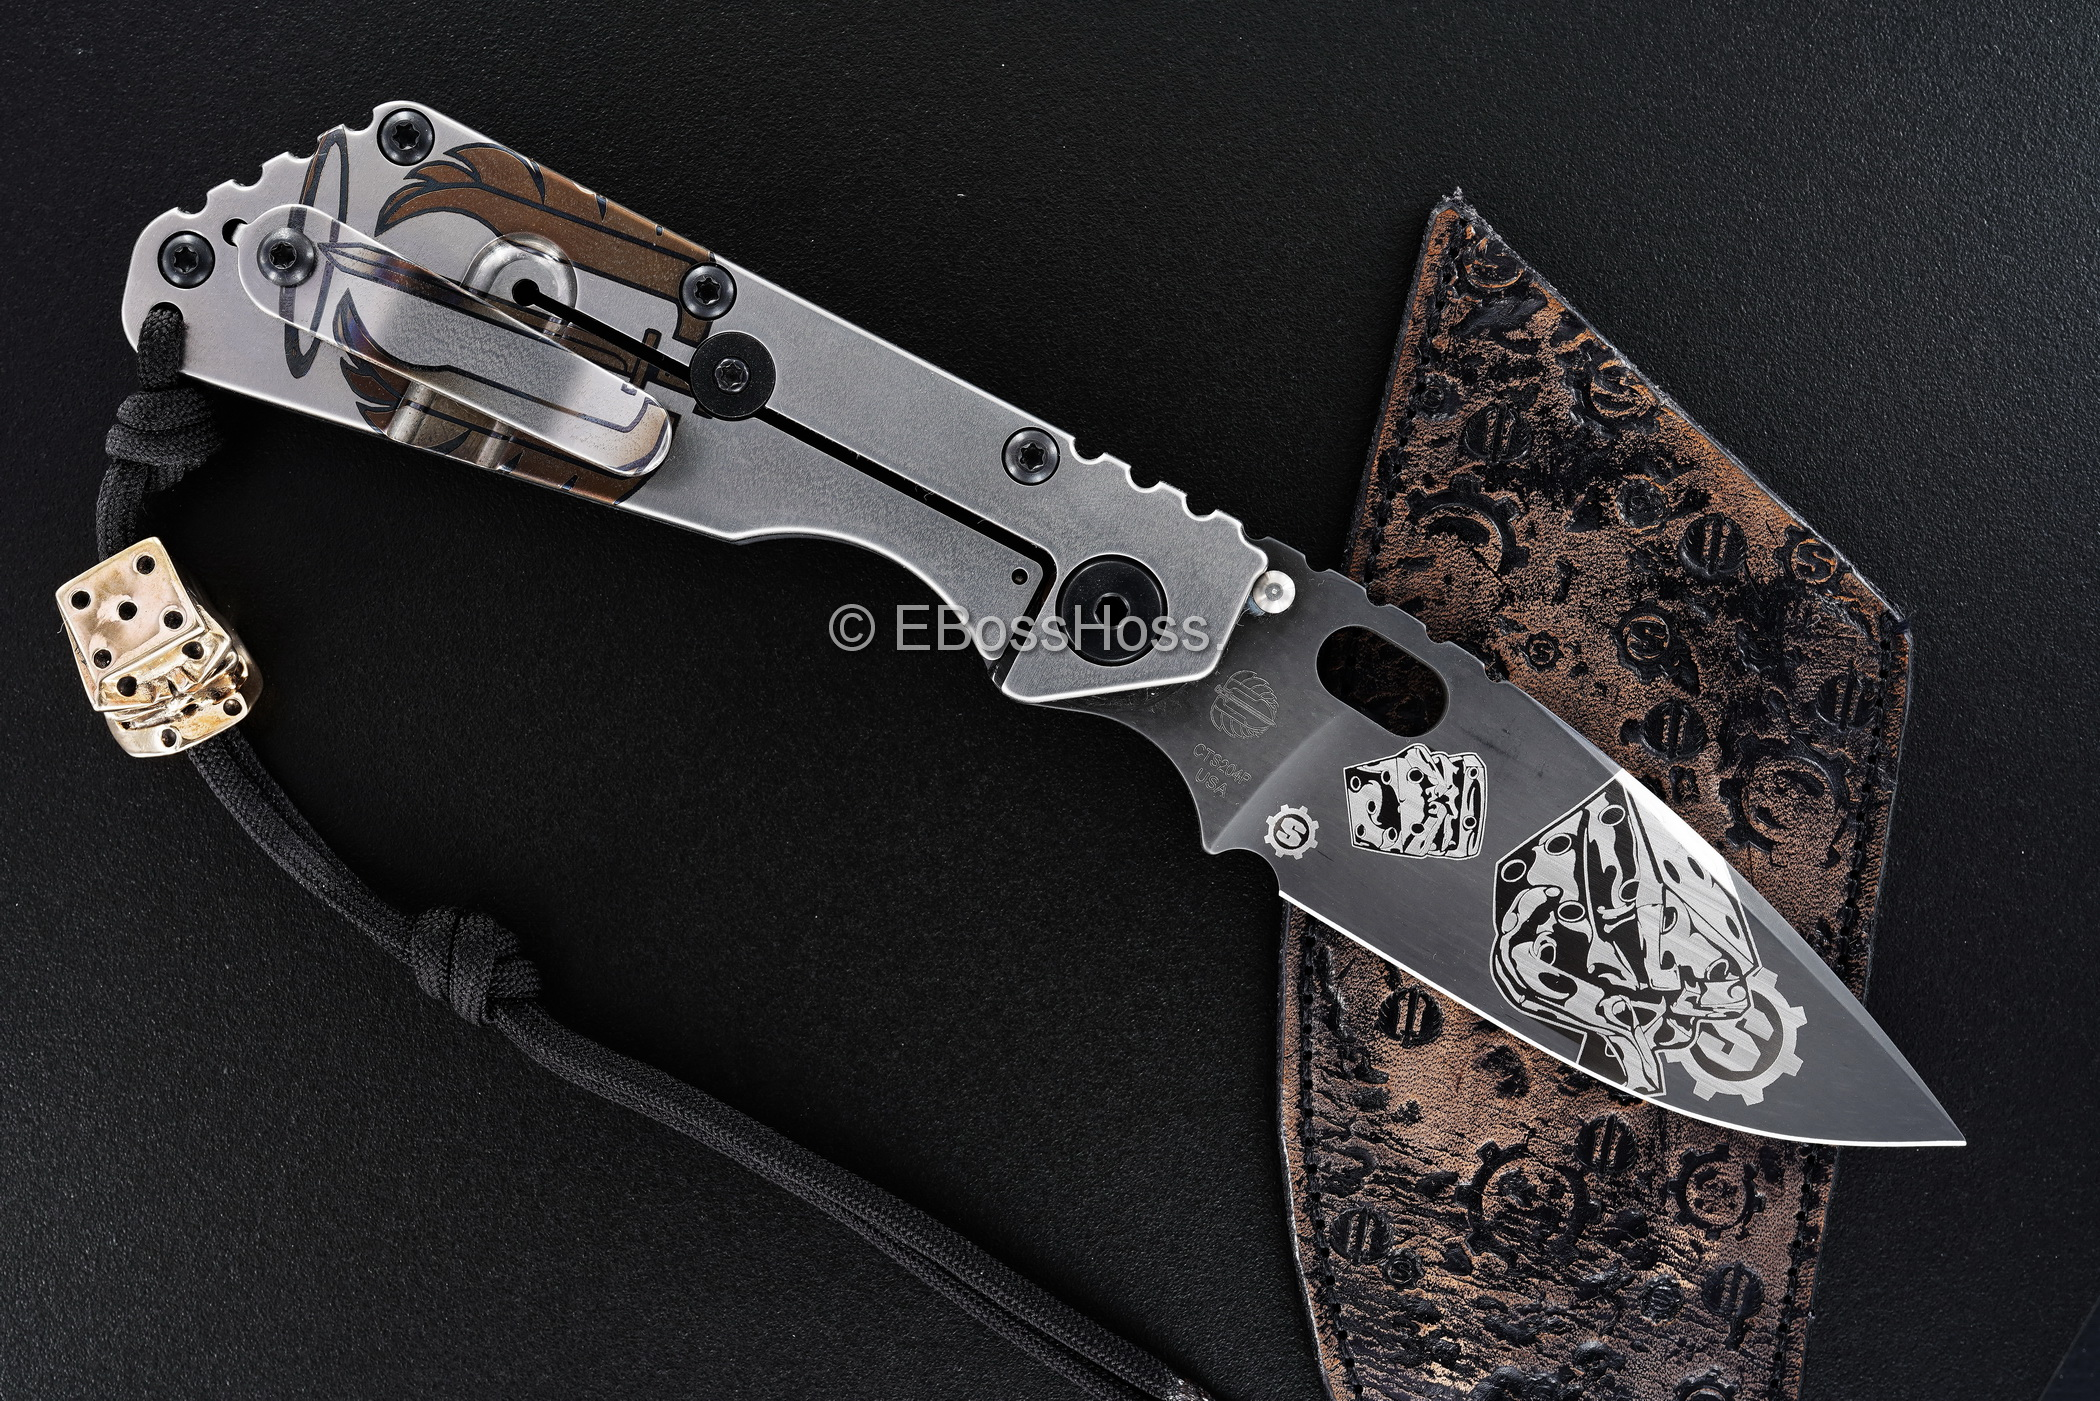 Strider / Starlingear Collaboration Lucky SMF -- Blade by Mick Strider